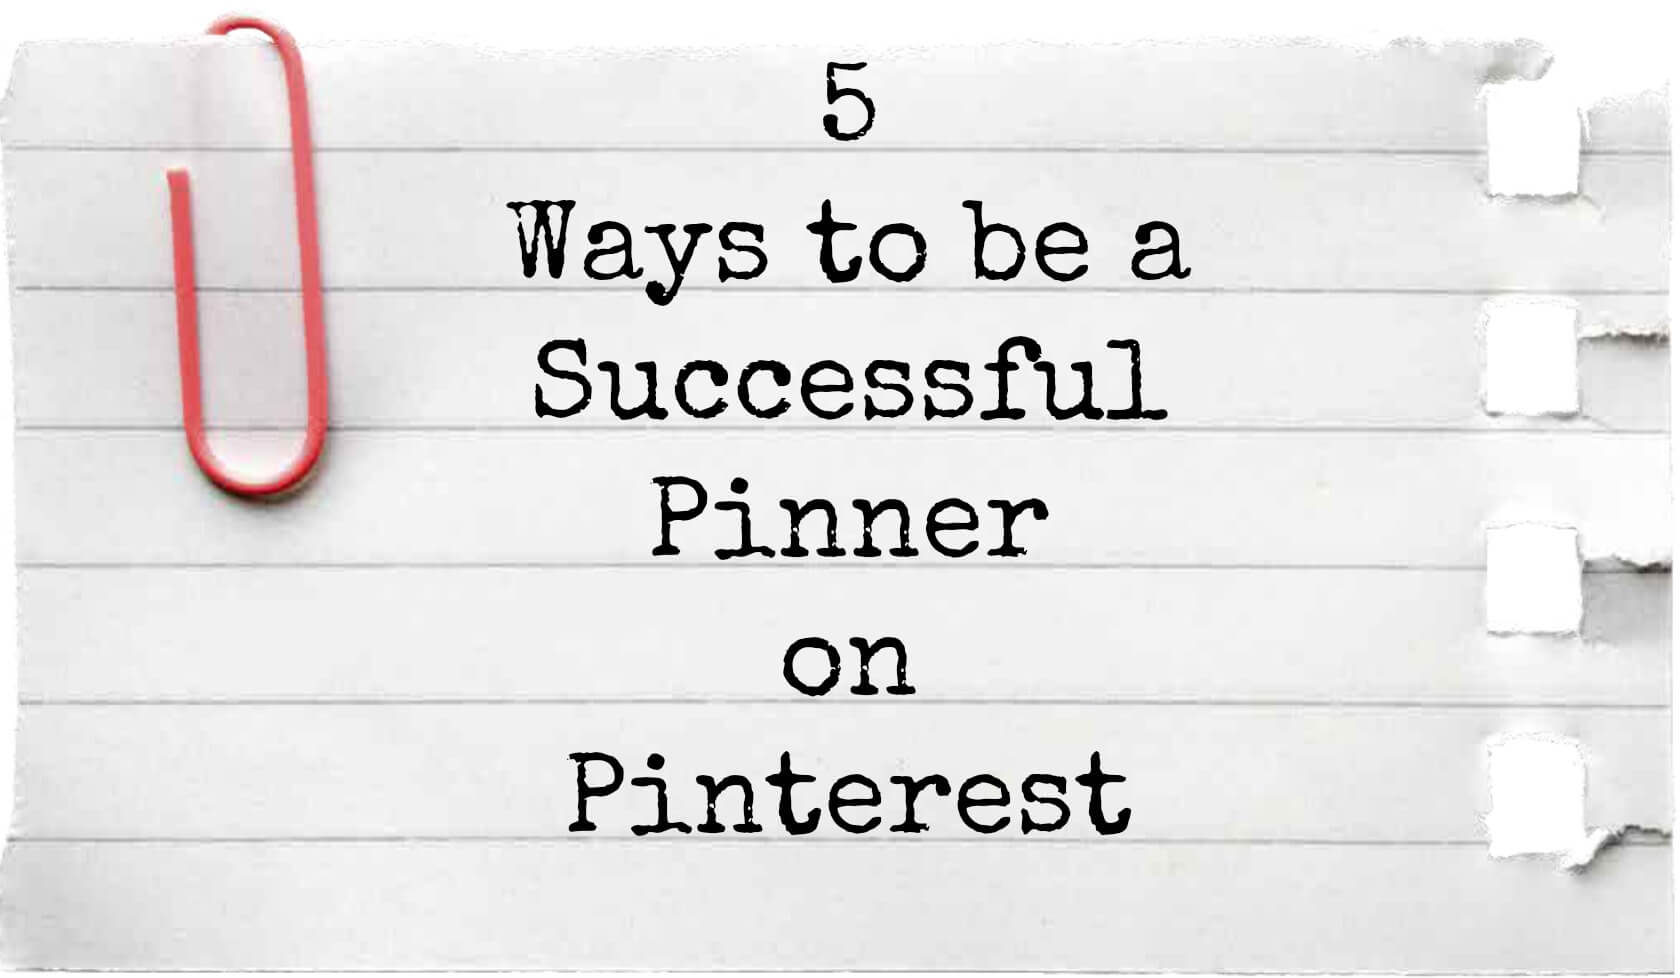 Thinking Outside The Sandbox: Business 5-Ways-to-be-a-Successful-Pinner-on-Pinterest.jpg 5 Ways to be a Successful Pinner All Posts Blogging Social Media  wahm Pinterest pinning pin mom how to pin business blog blogger